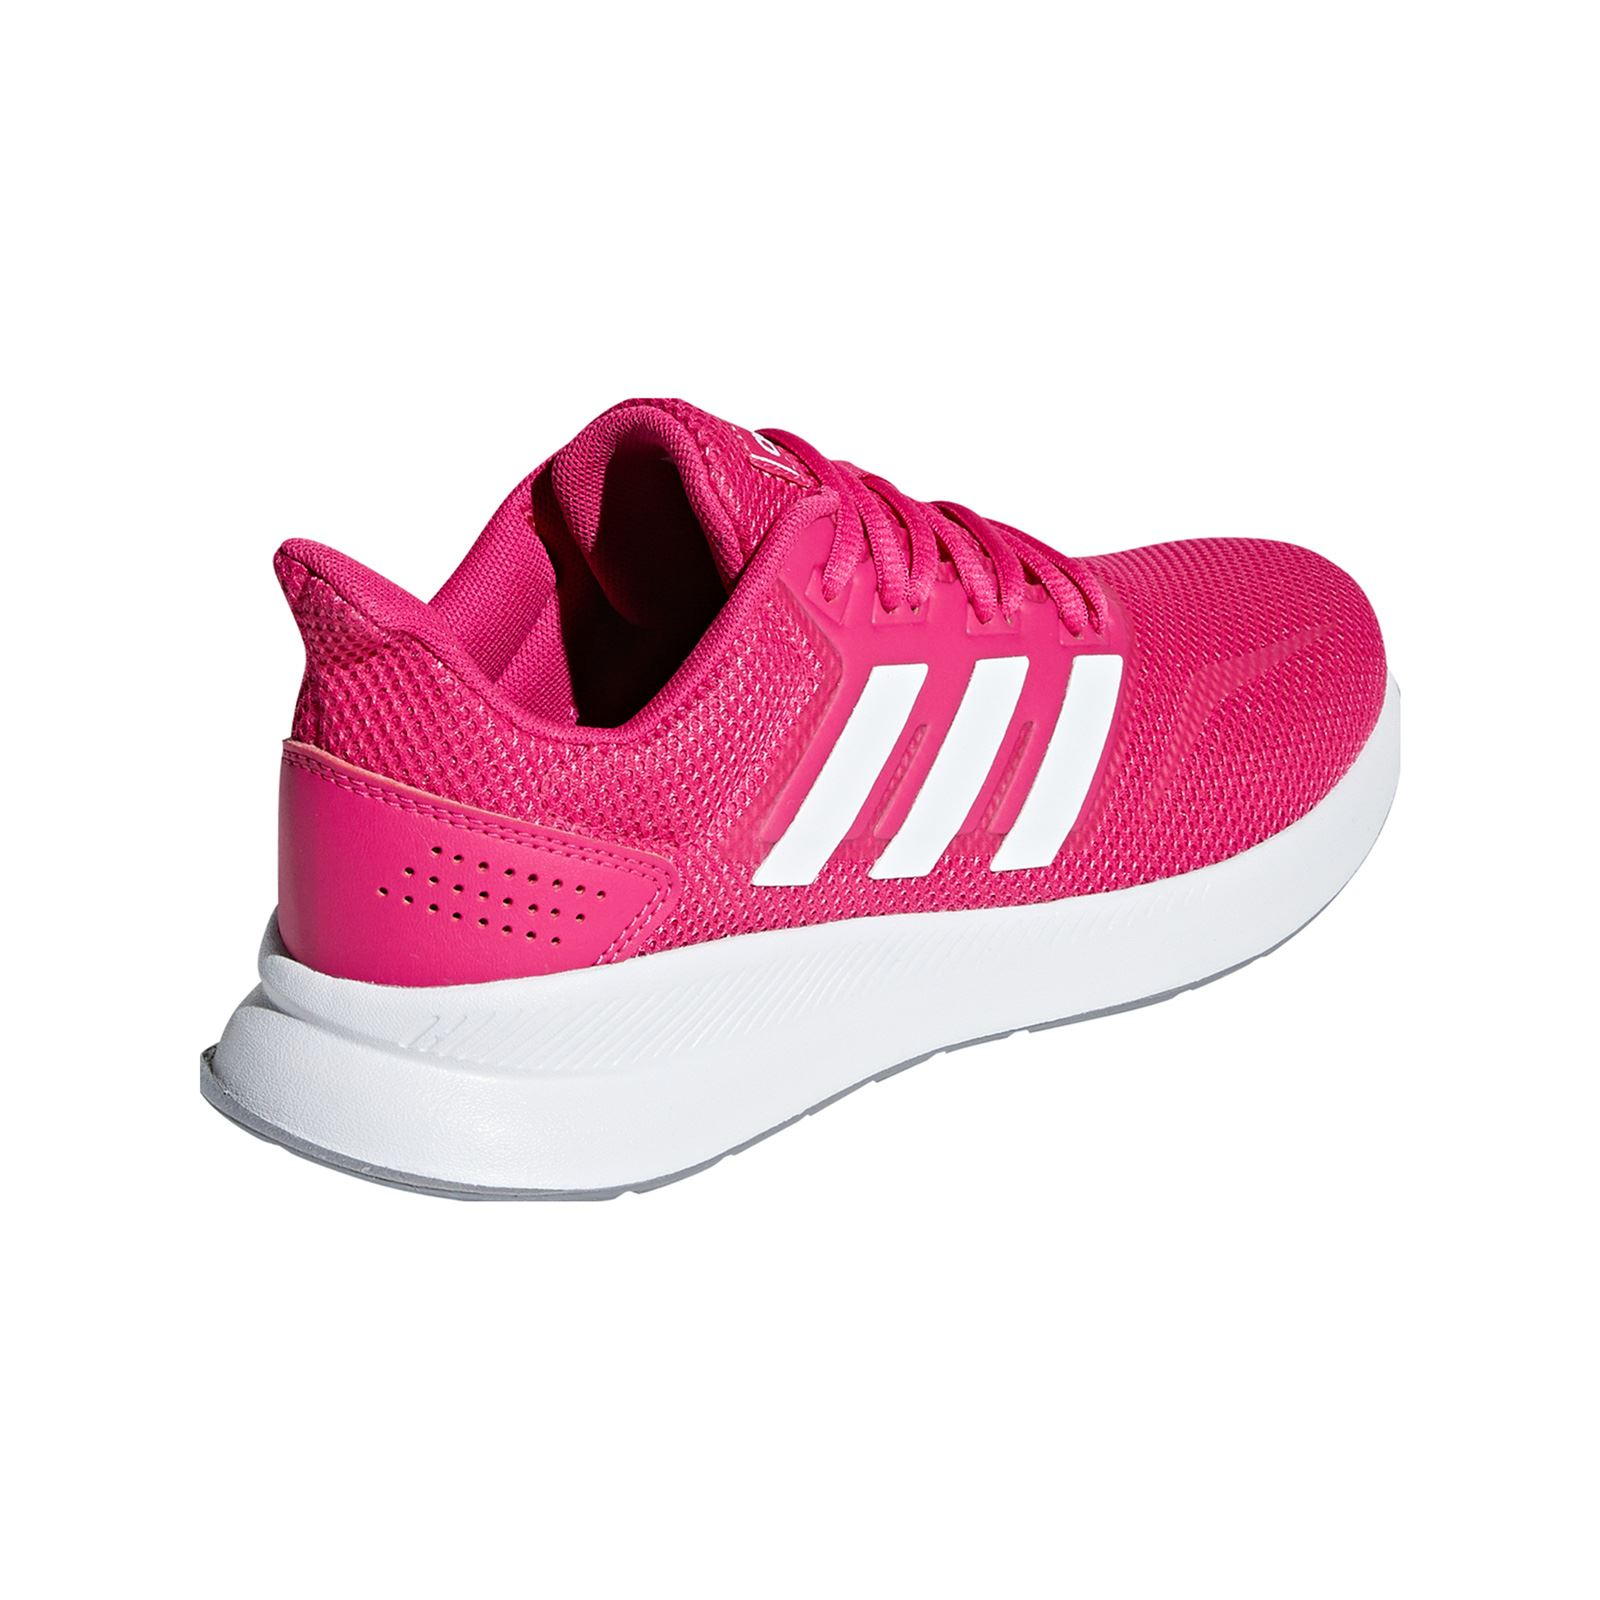 Basse Runflacon Adidas Performance RosaBrandalley Sneakers D9WEH2I